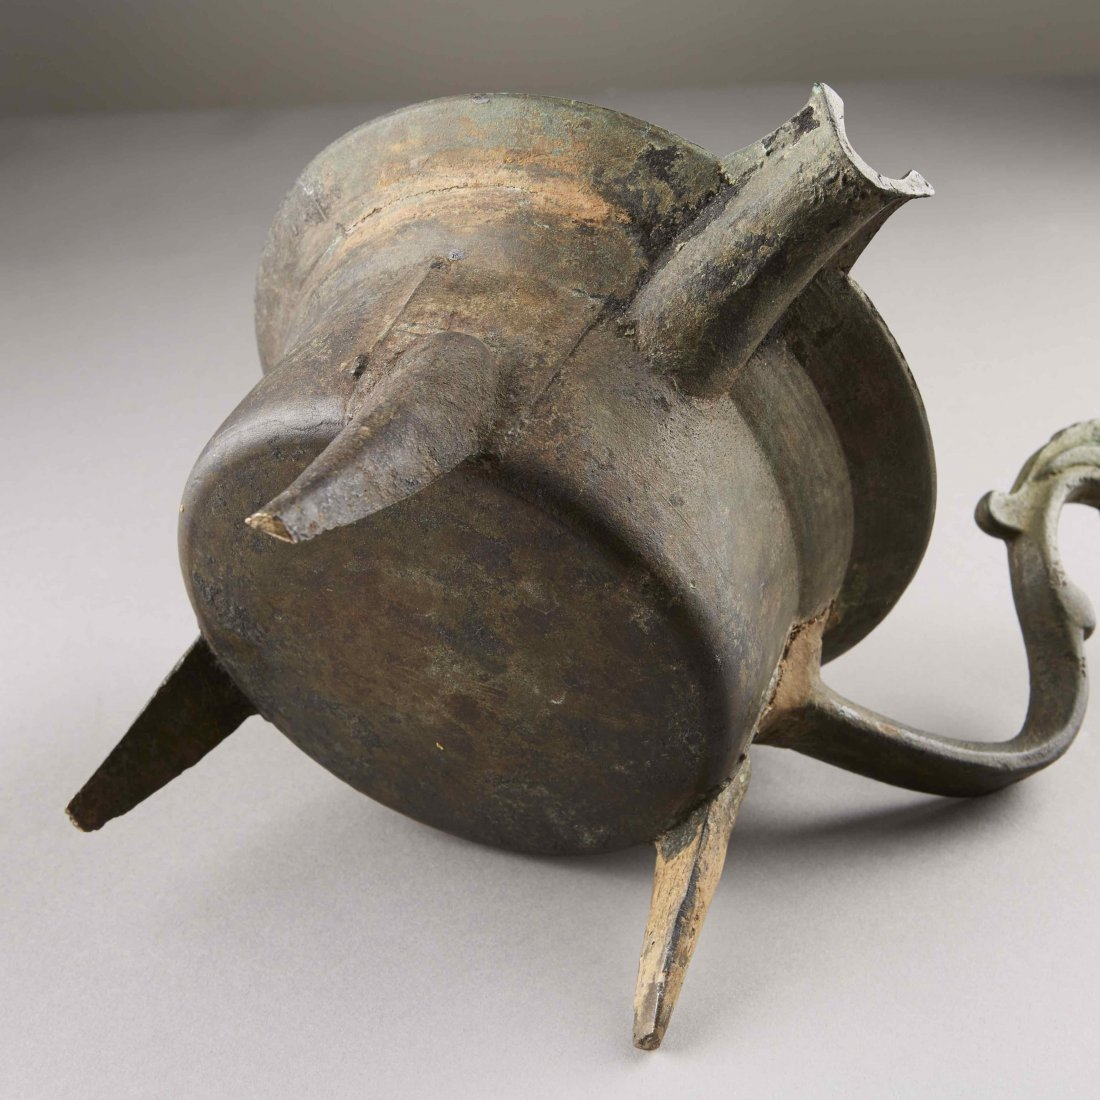 Chinese Bronze Han Dynasty Tripod Cooking Vessel - 10